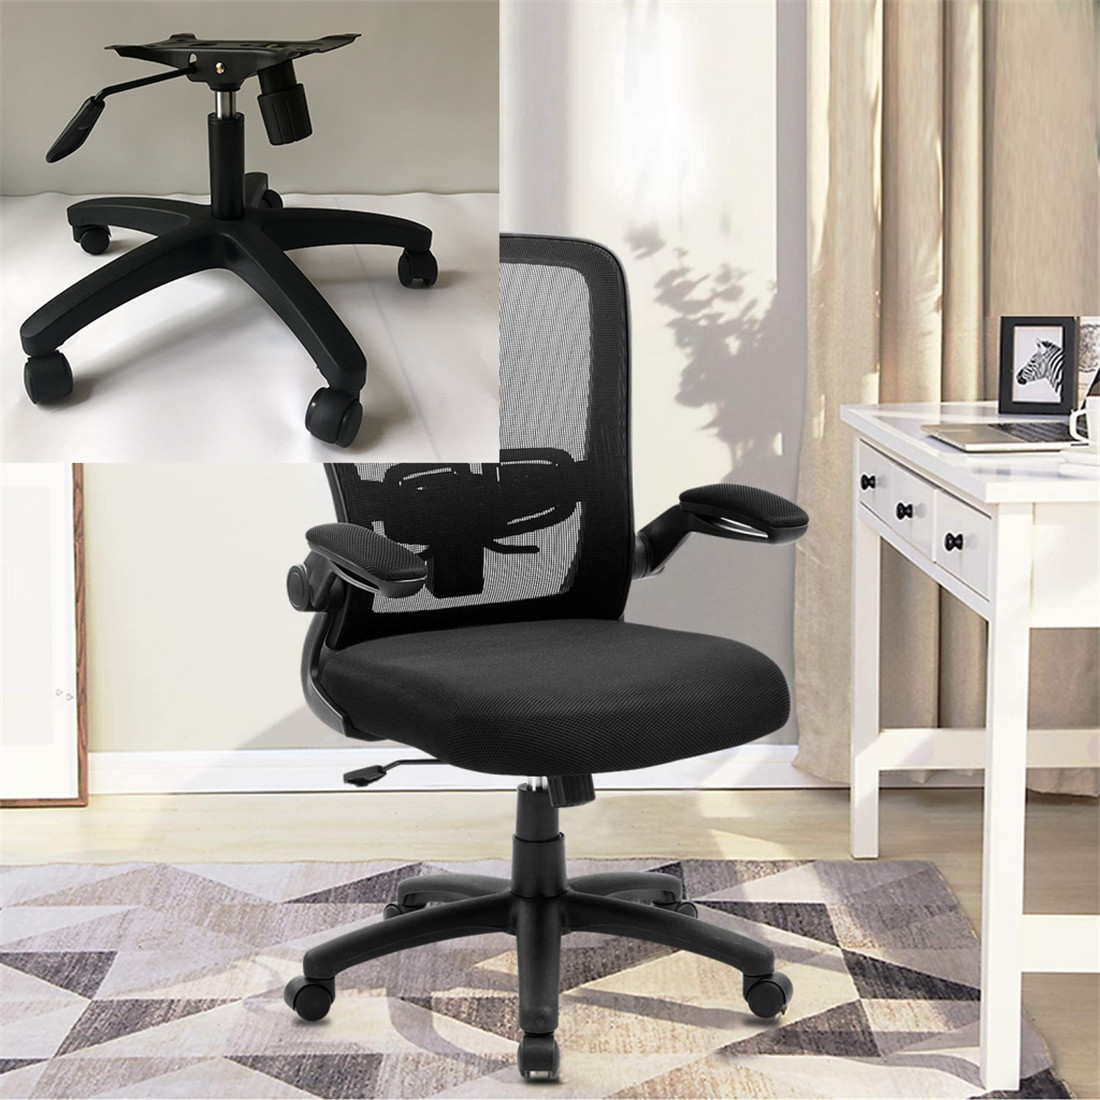 where can i bulk buy bifma certified office chair base kit components